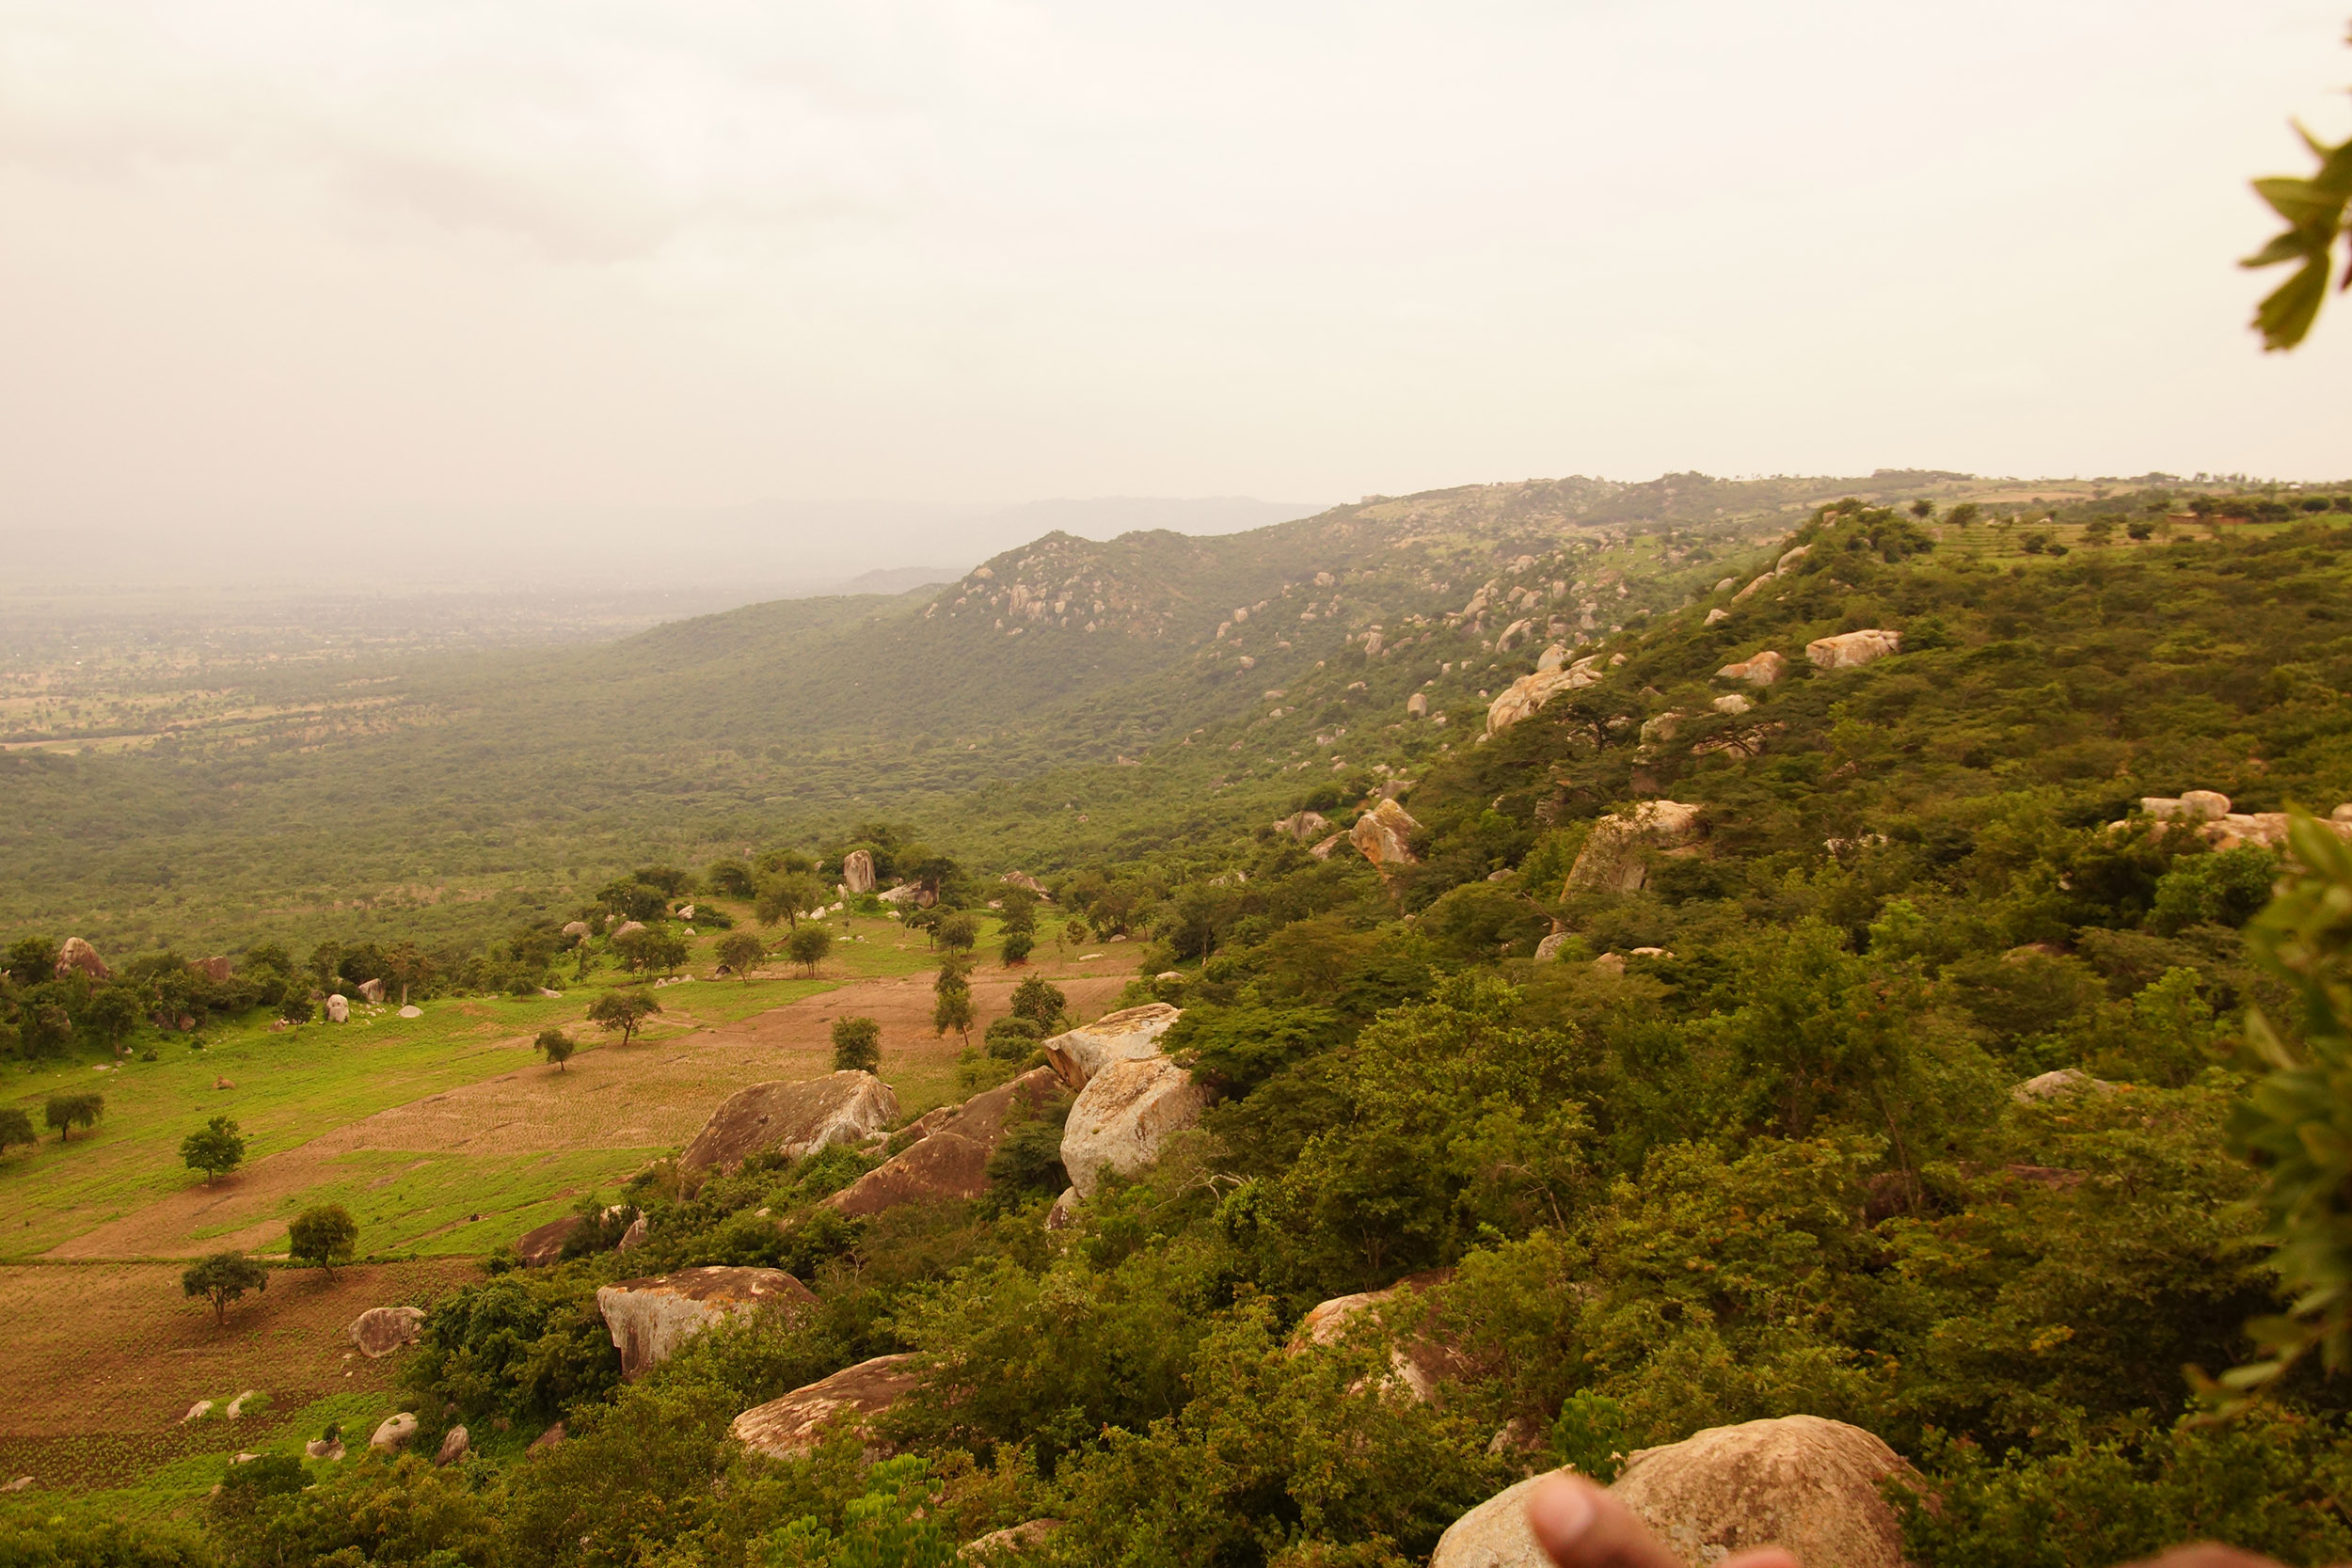 The windy Rift Valley Escarpment in Singida, Tanzania